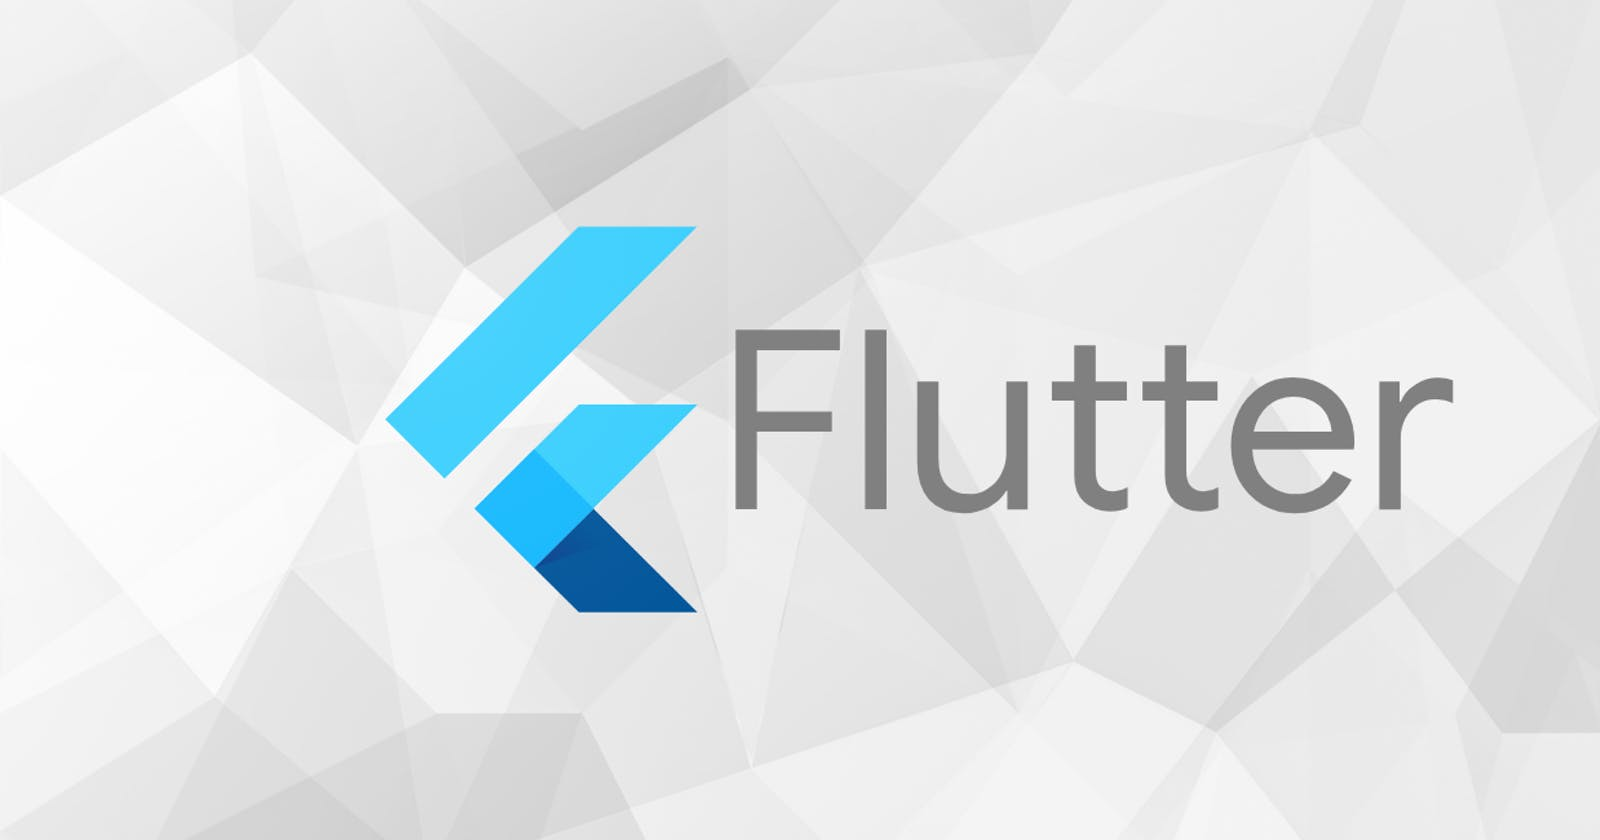 #Flutter: What are SingleChildScrollView and Expanded?